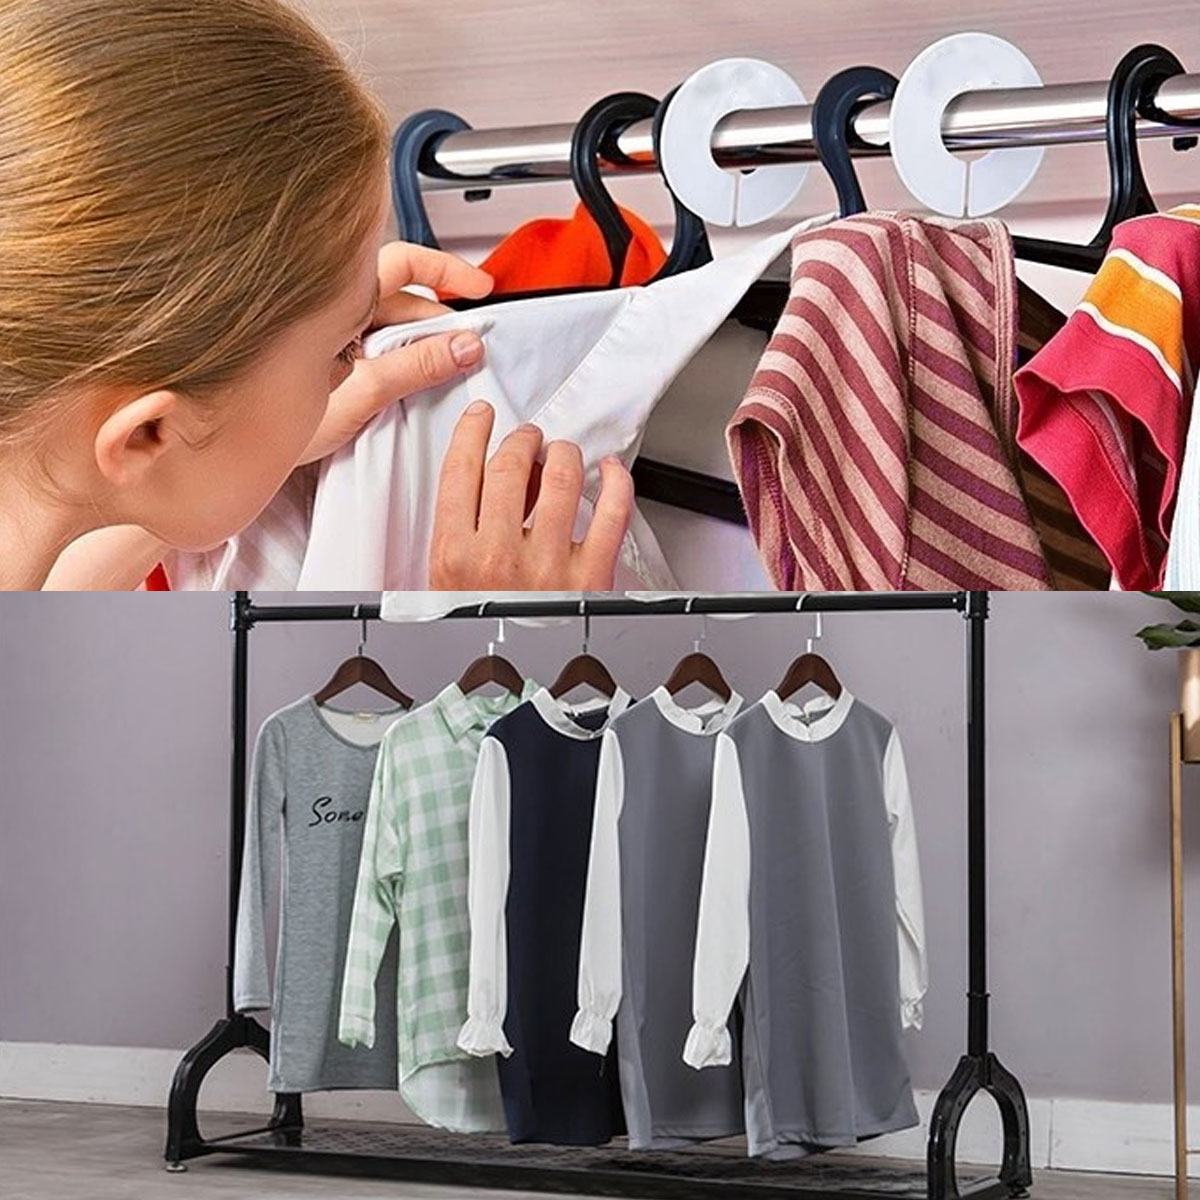 12PCS White Round Clothing Rack Hanger Size Dividers for Closet Wardrobe Stock Room Sales Floor Shopping Mall